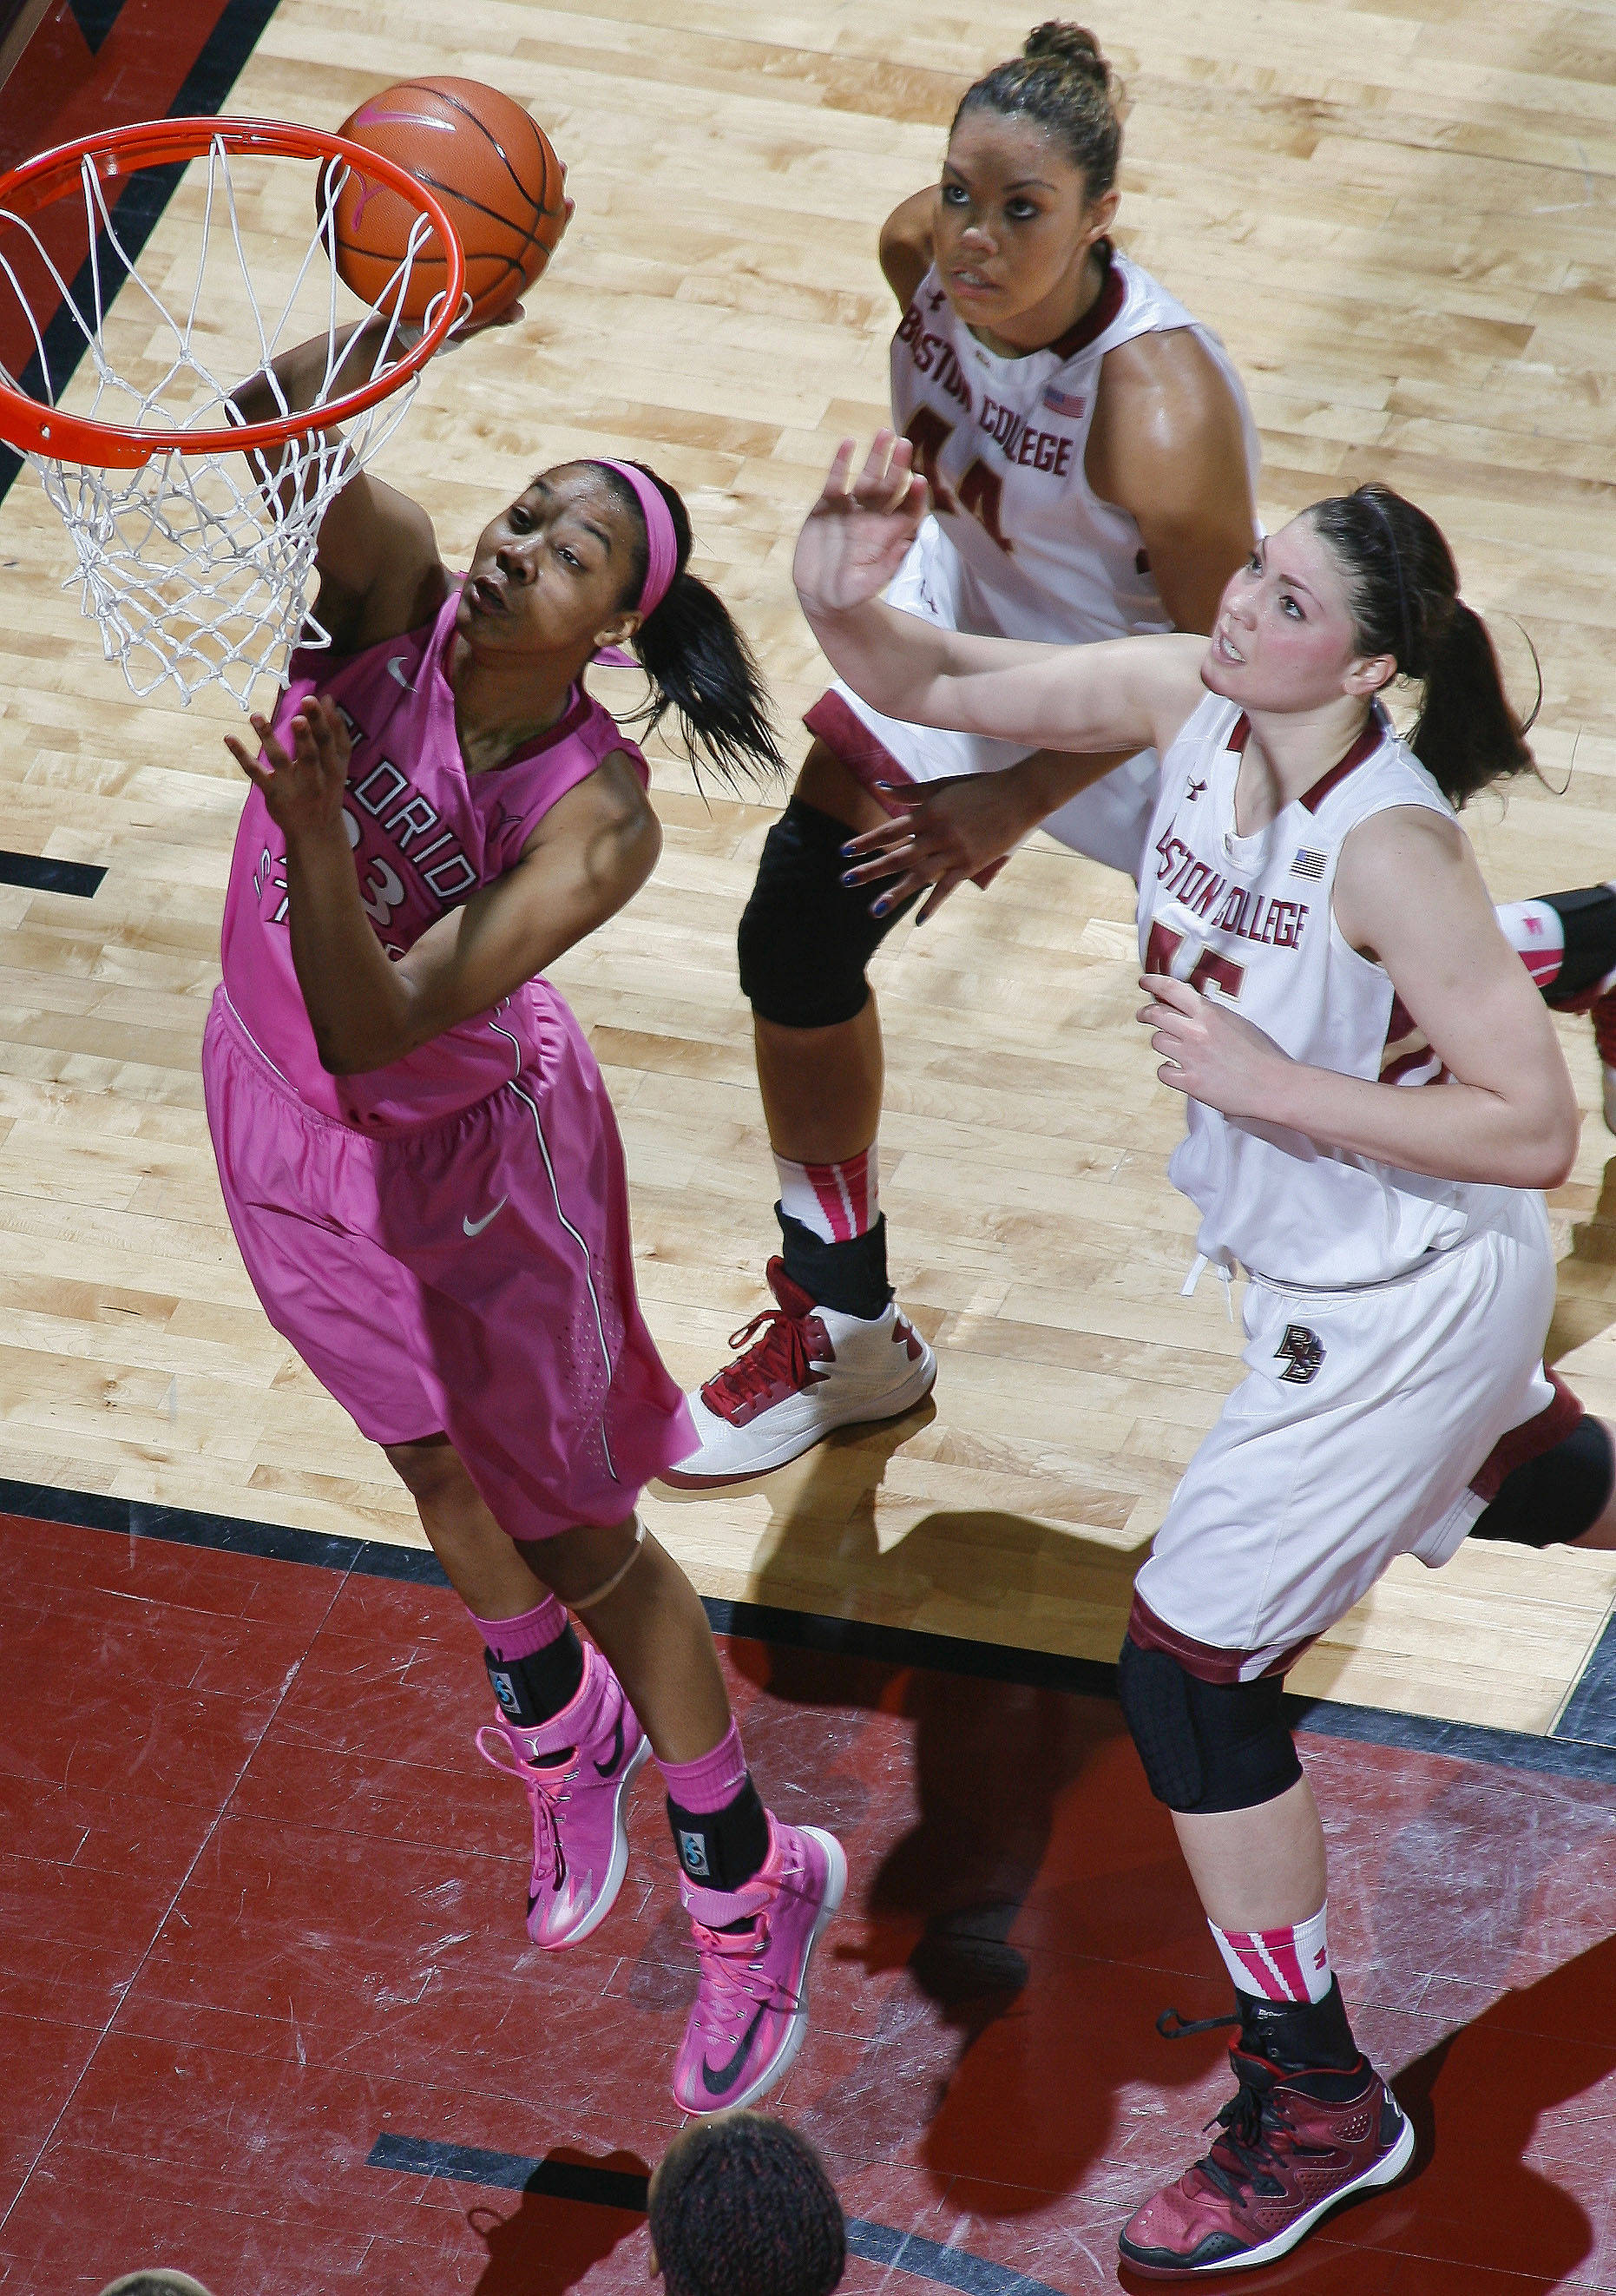 Florida State Seminoles forward Ivey Slaughter (23) shoots the ball in front of Boston College Eagles guard/forward Kat Cooper (44) and forward/center Katie Zenevitch (45). Mandatory Credit: Phil Sears-USA TODAY Sports